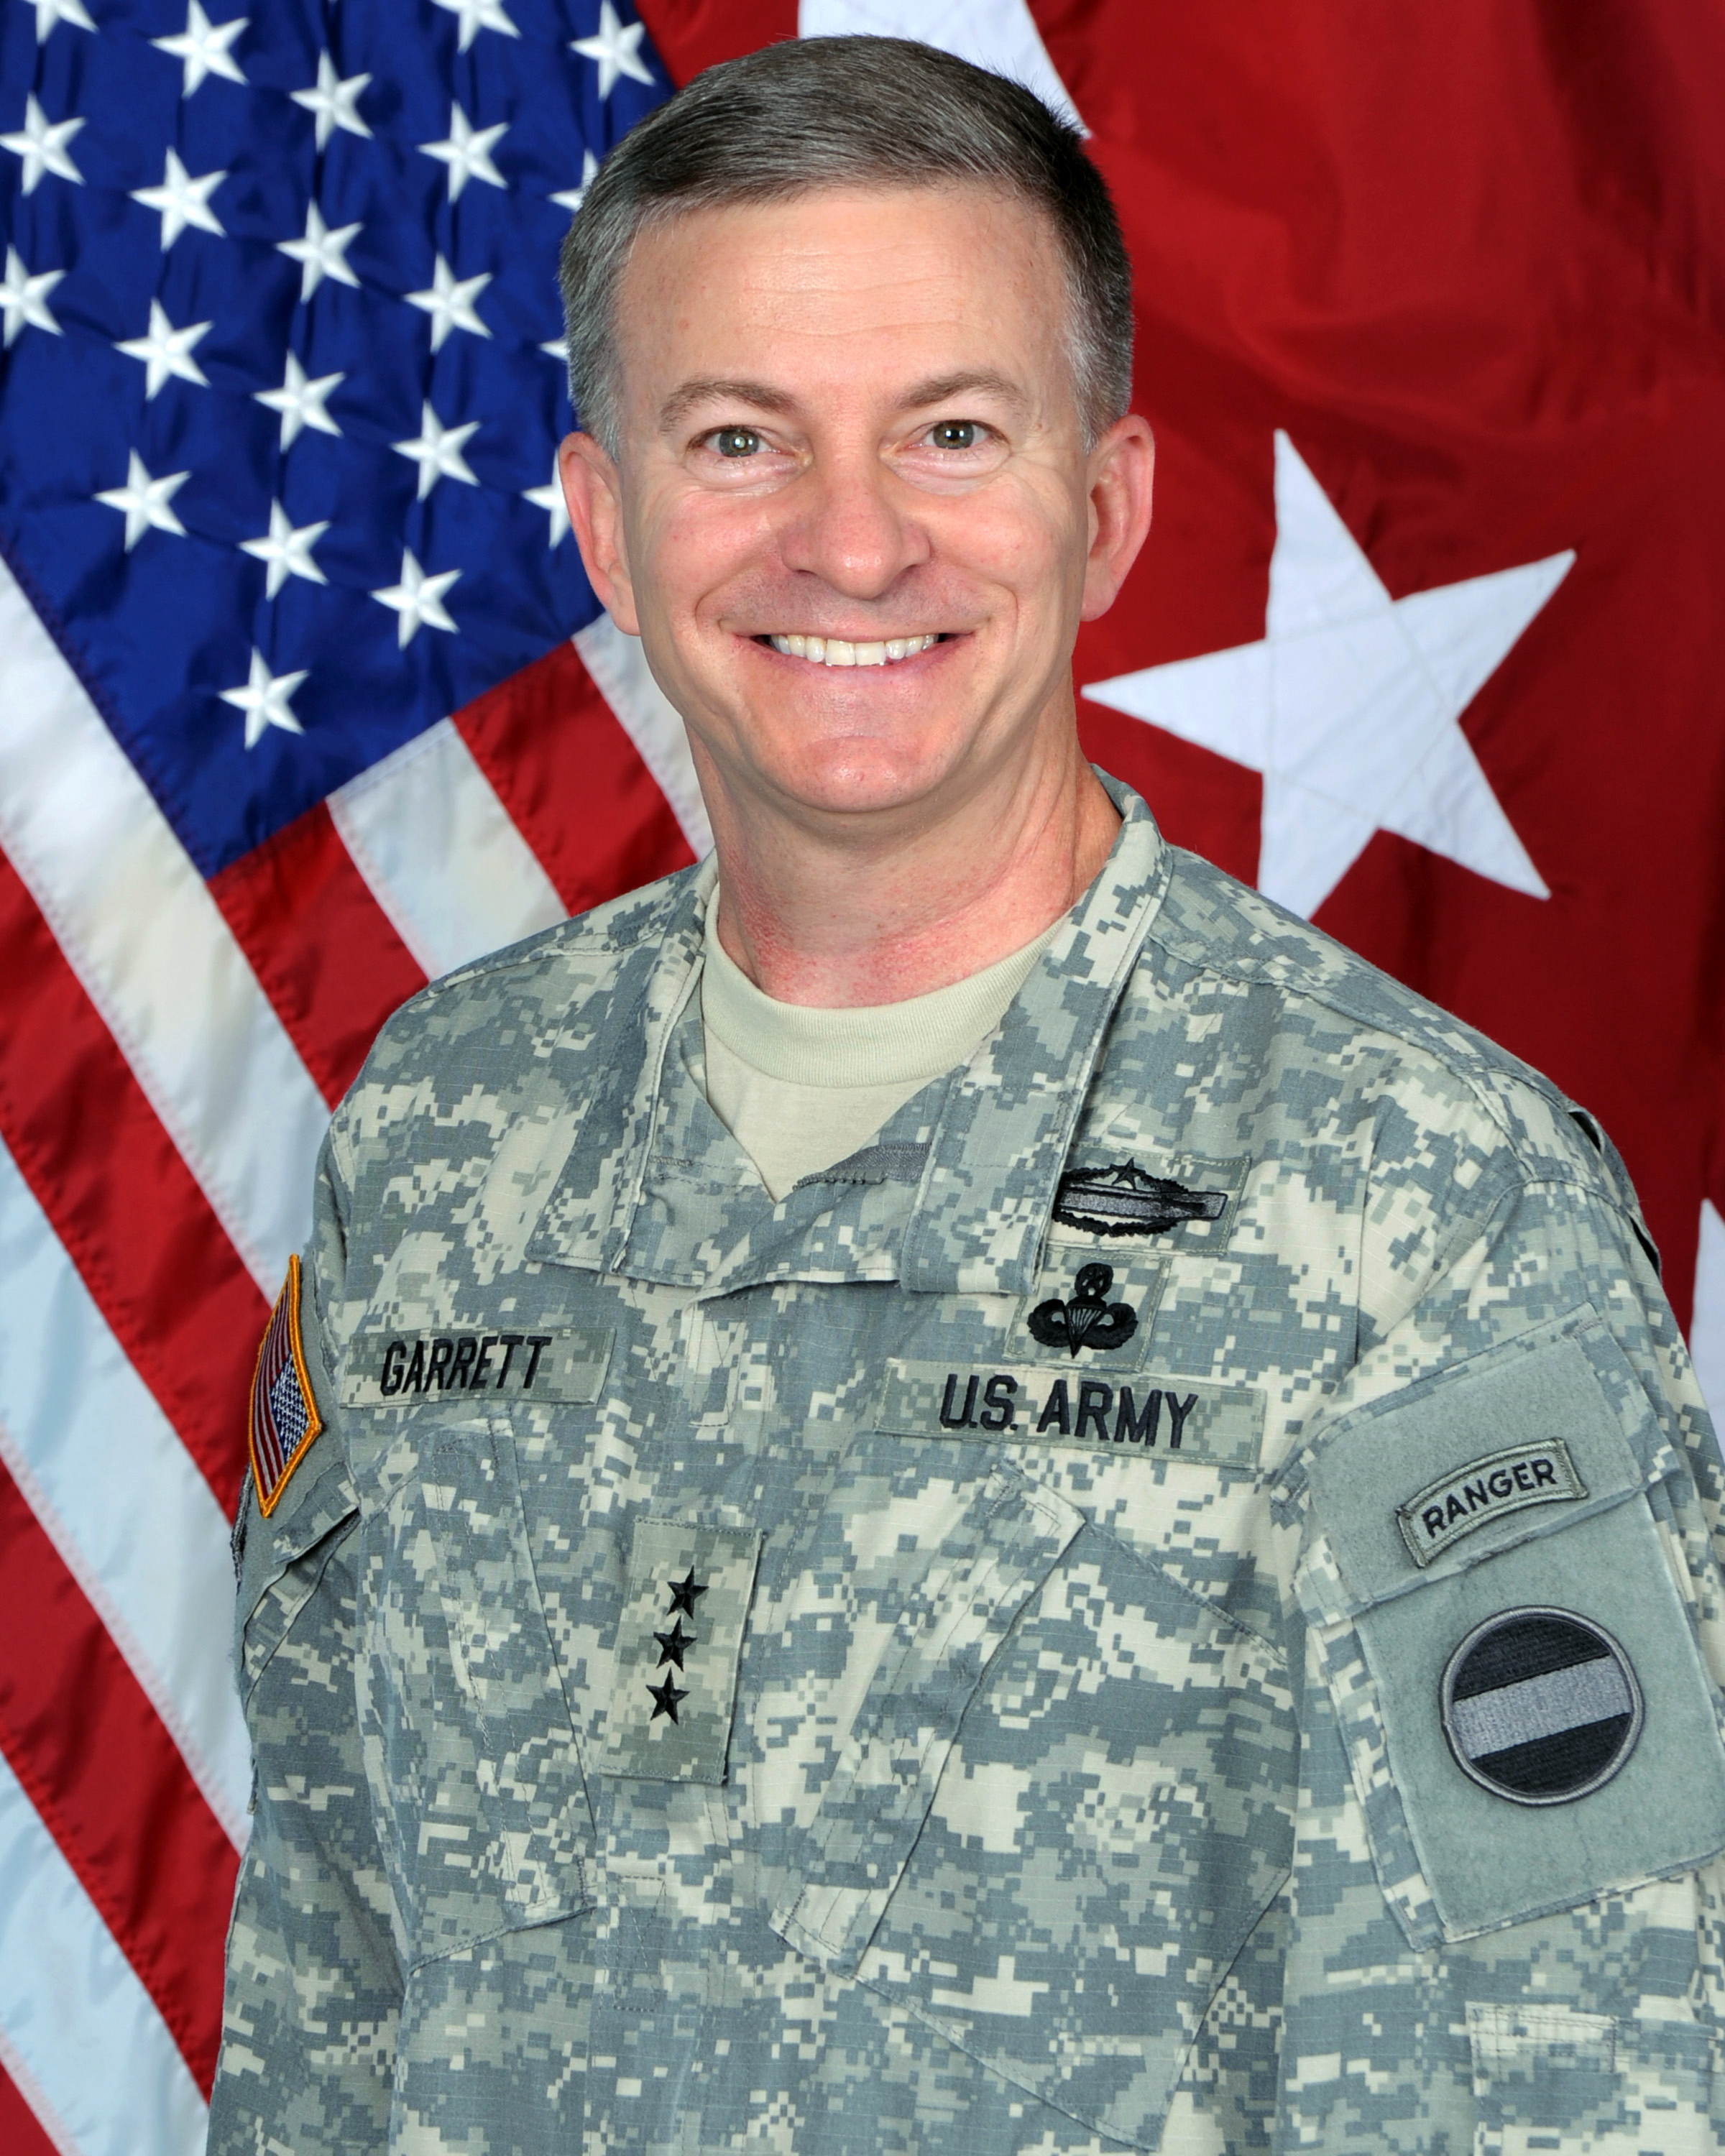 William B. Garrett III FileUS Army Lt Gen William B Garrett IIIIjpg